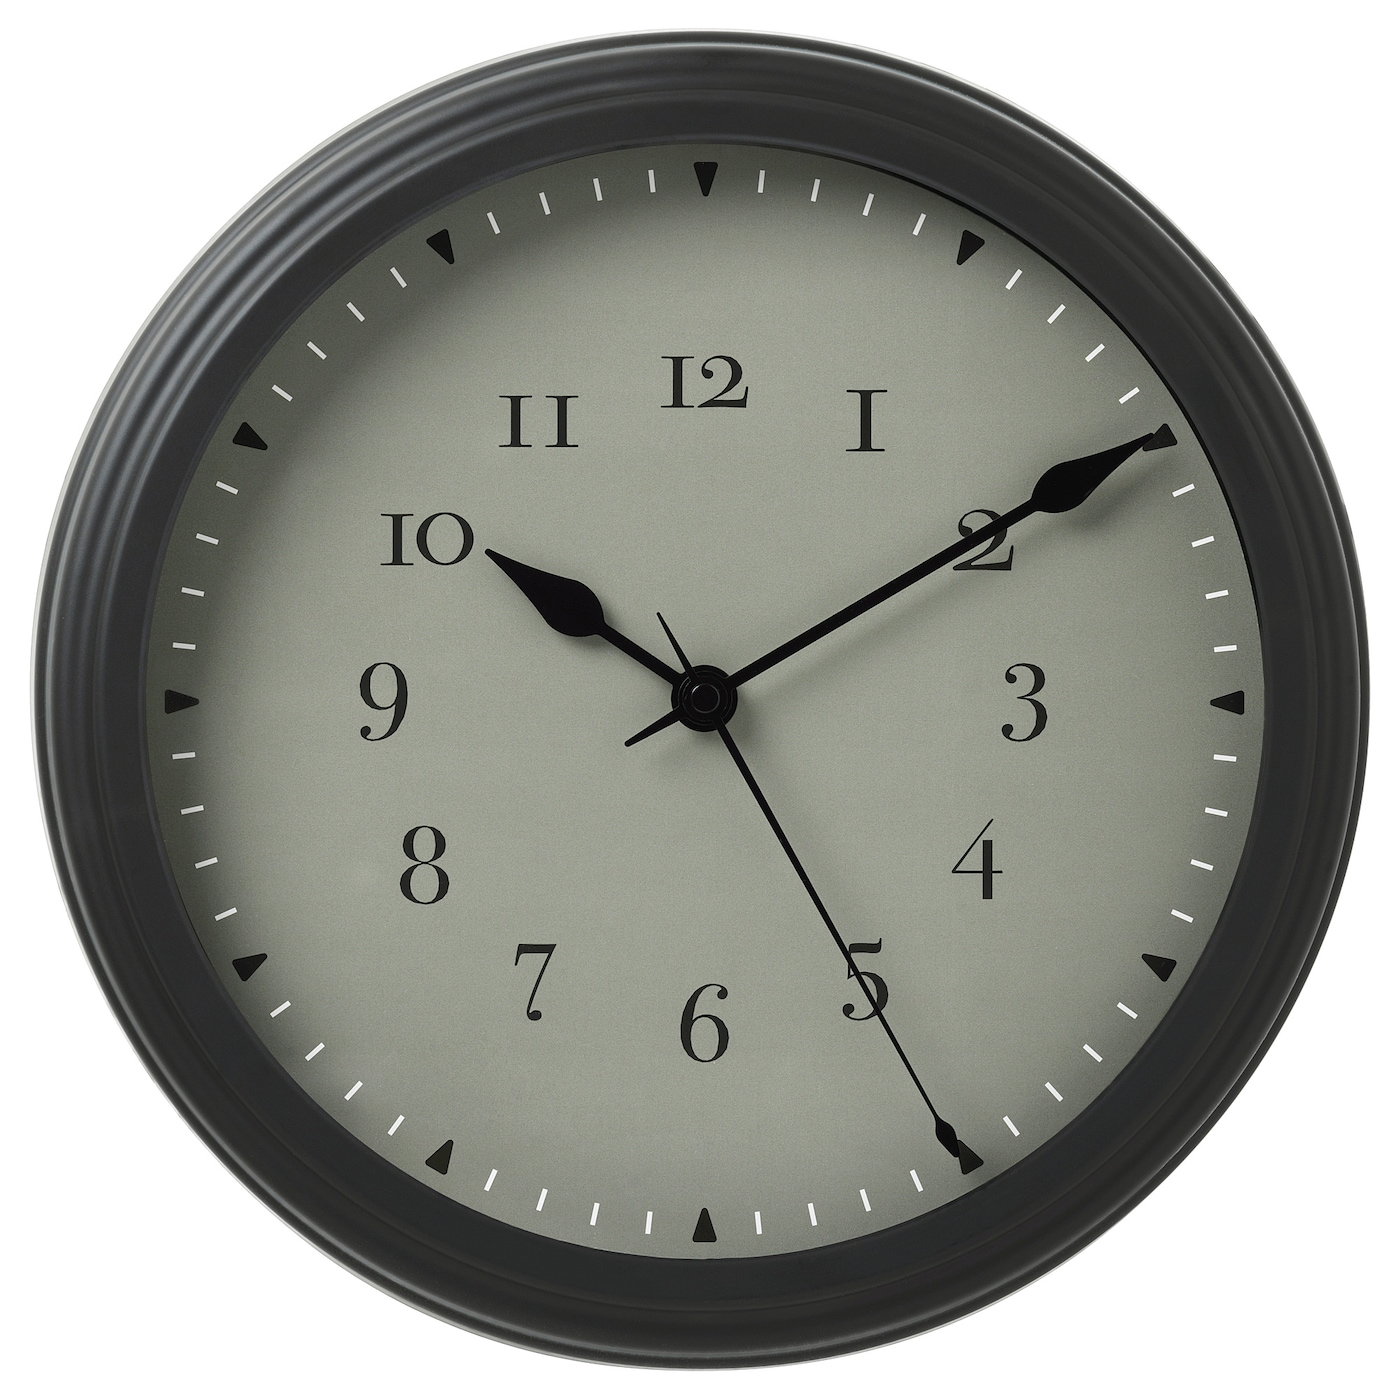 IKEA VISCHAN wall clock No disturbing ticking sounds since the clock has a silent quartz movement.